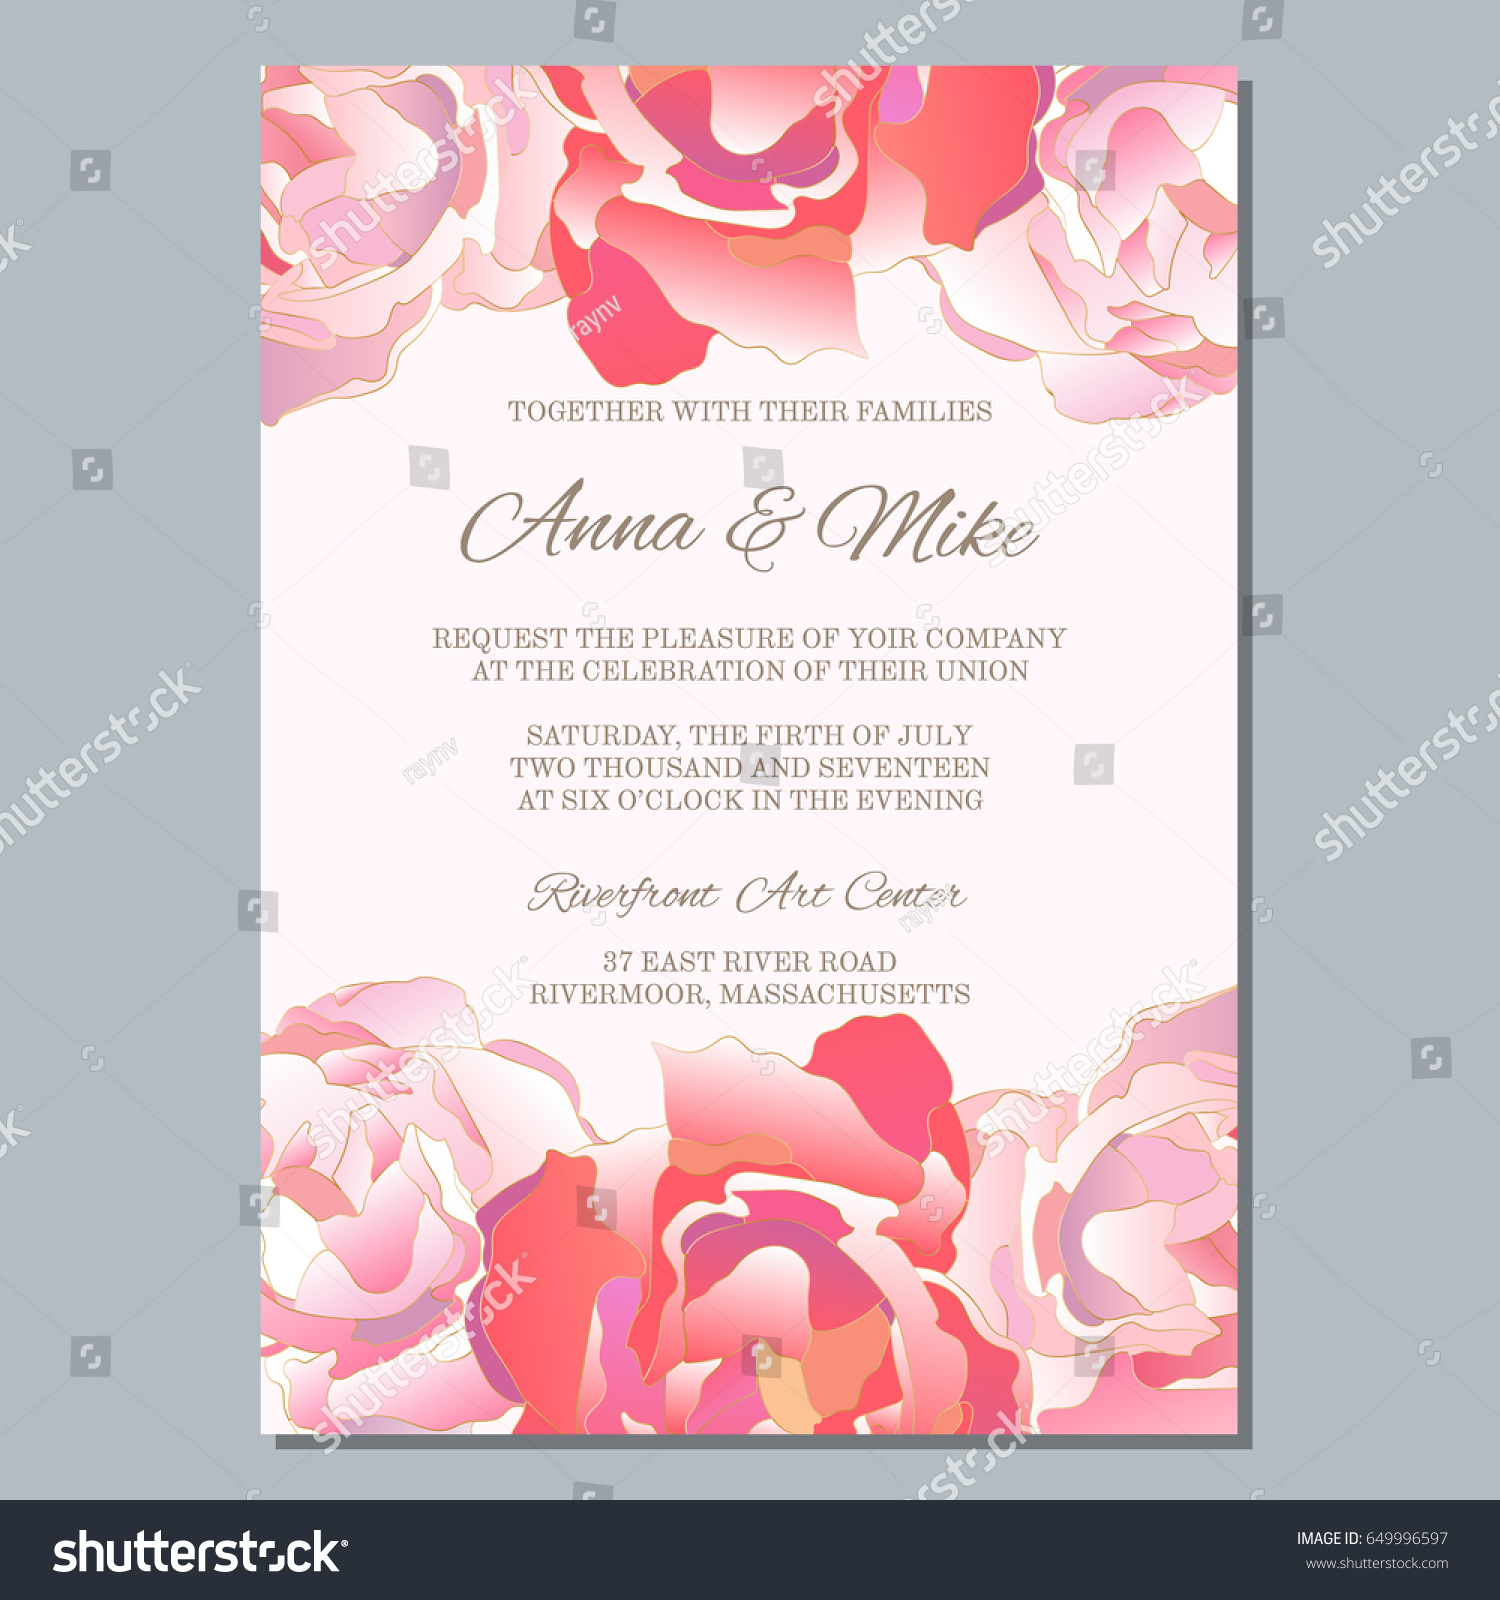 Wedding Invitation Template Roses Thank You Stock Vector 649996597 ...